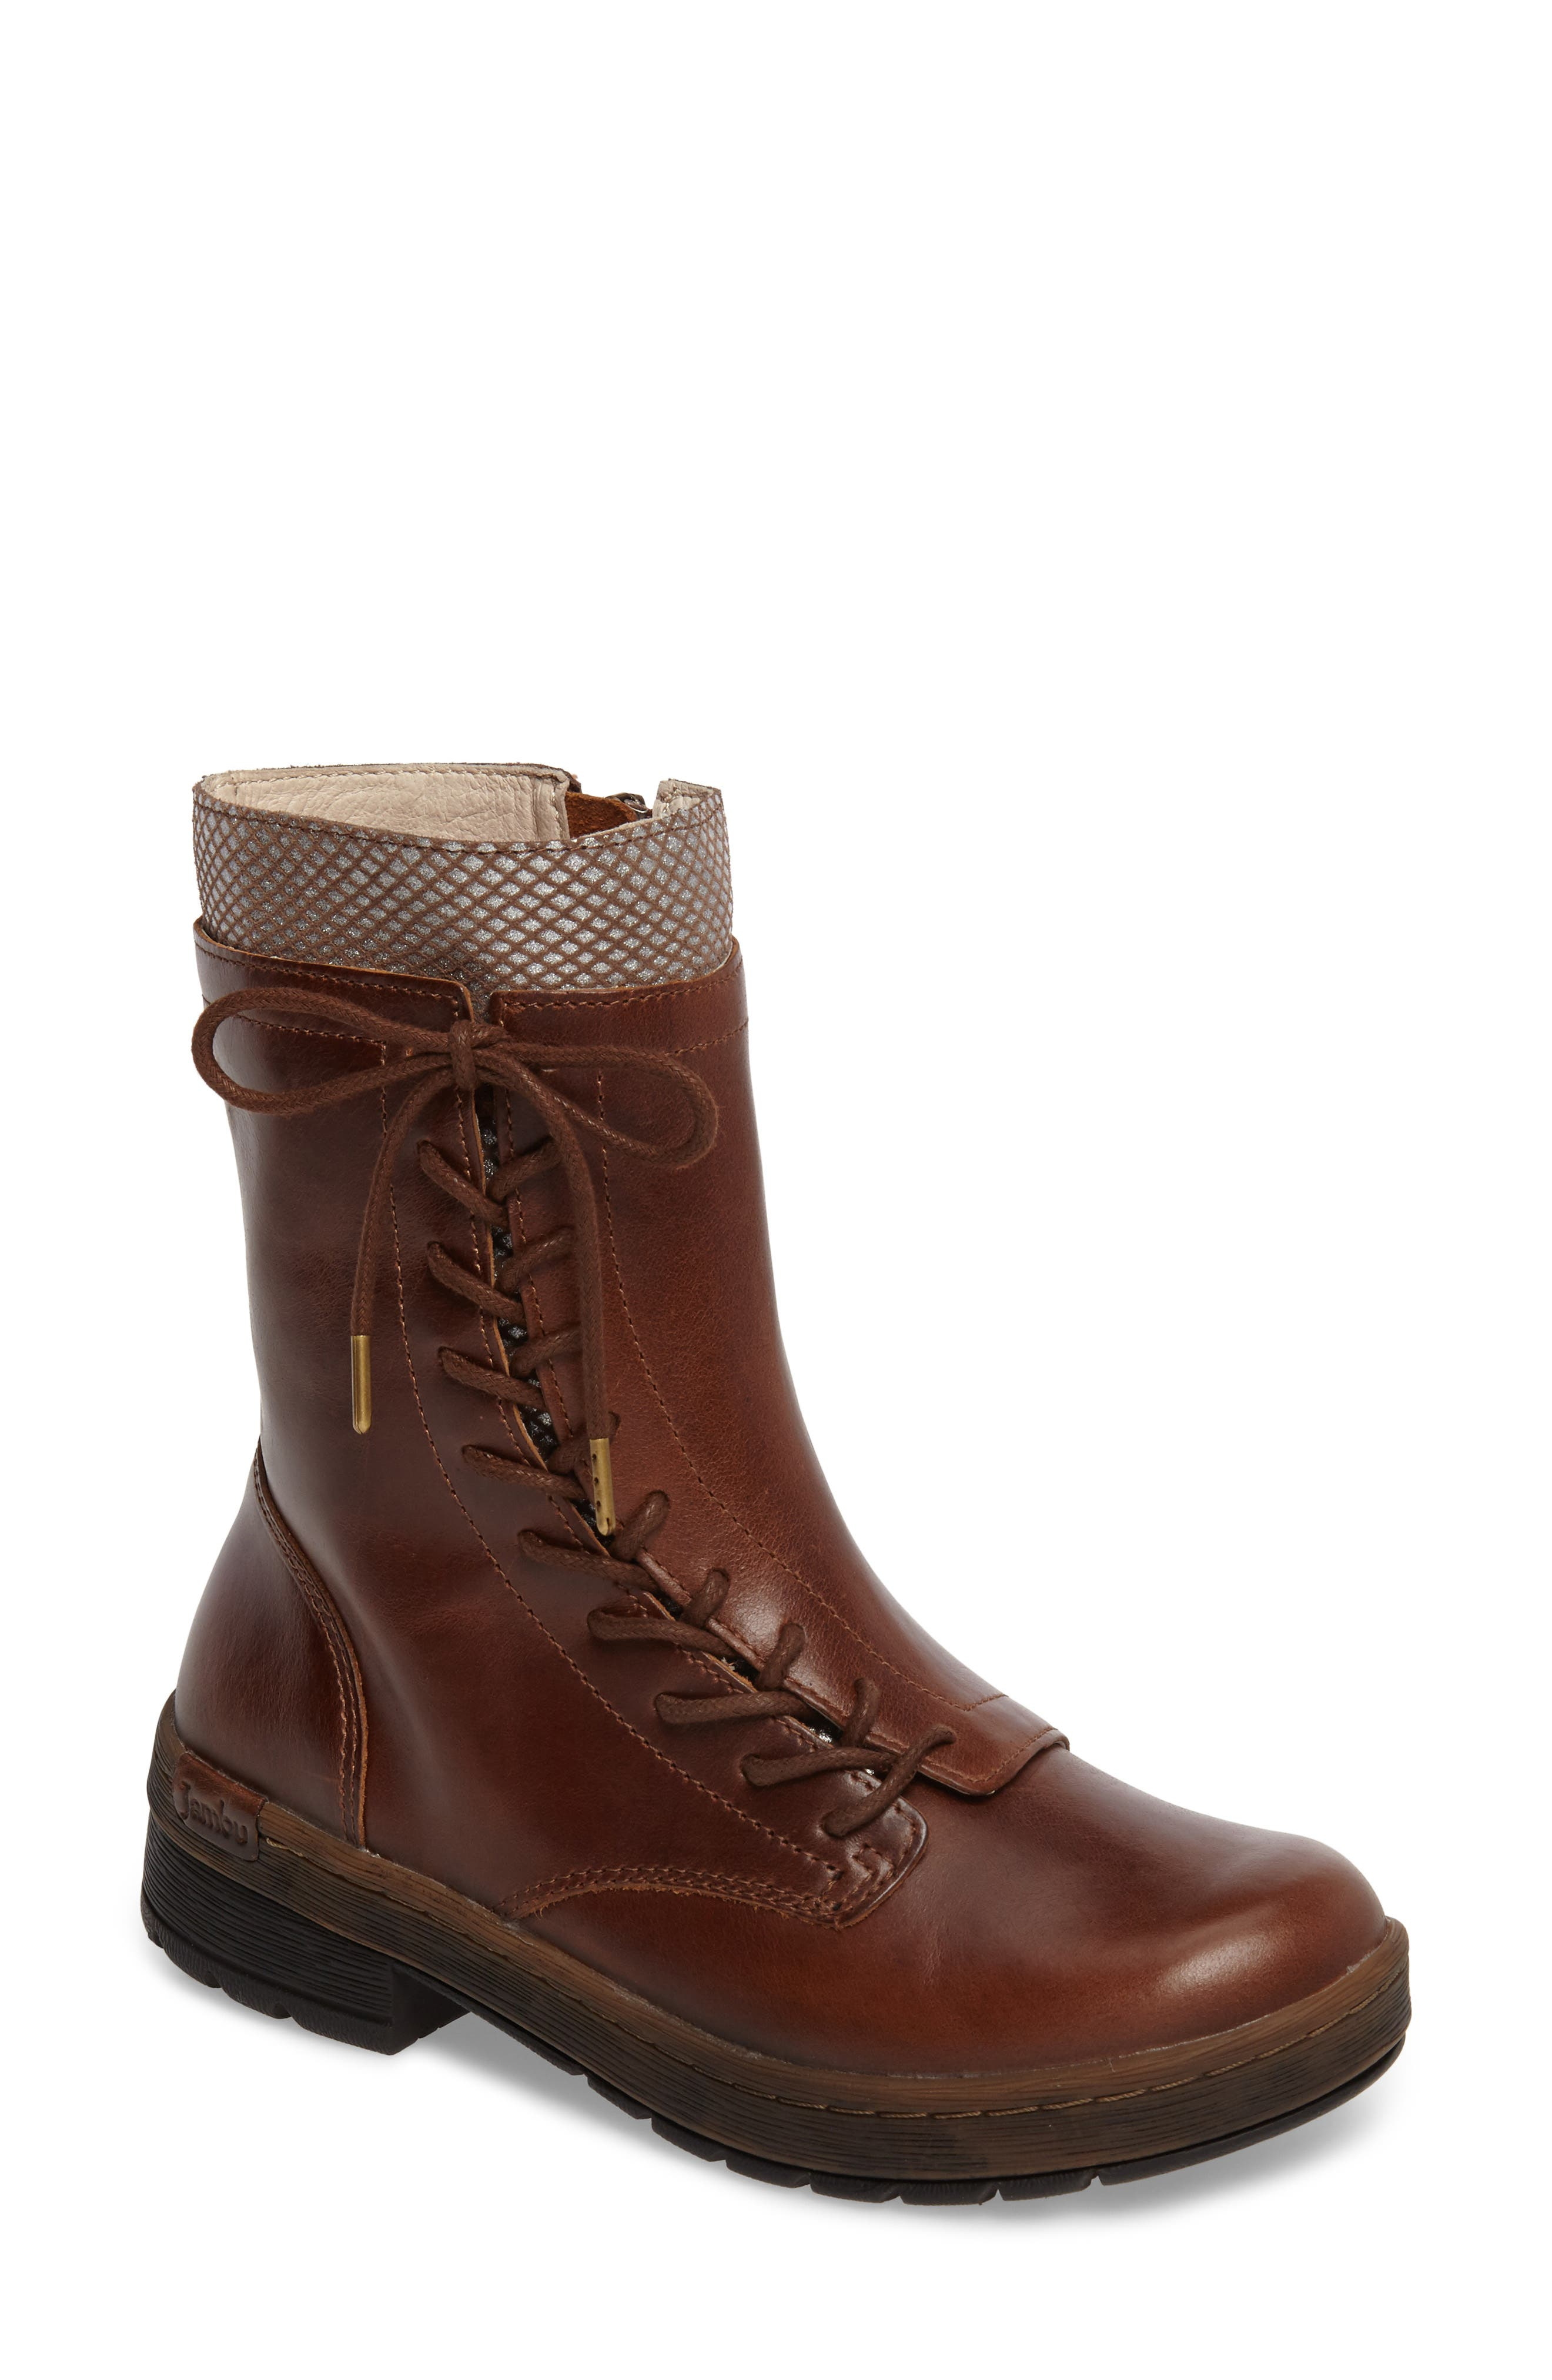 JAMBU Chestnut Lace-Up Water Resistant Boot